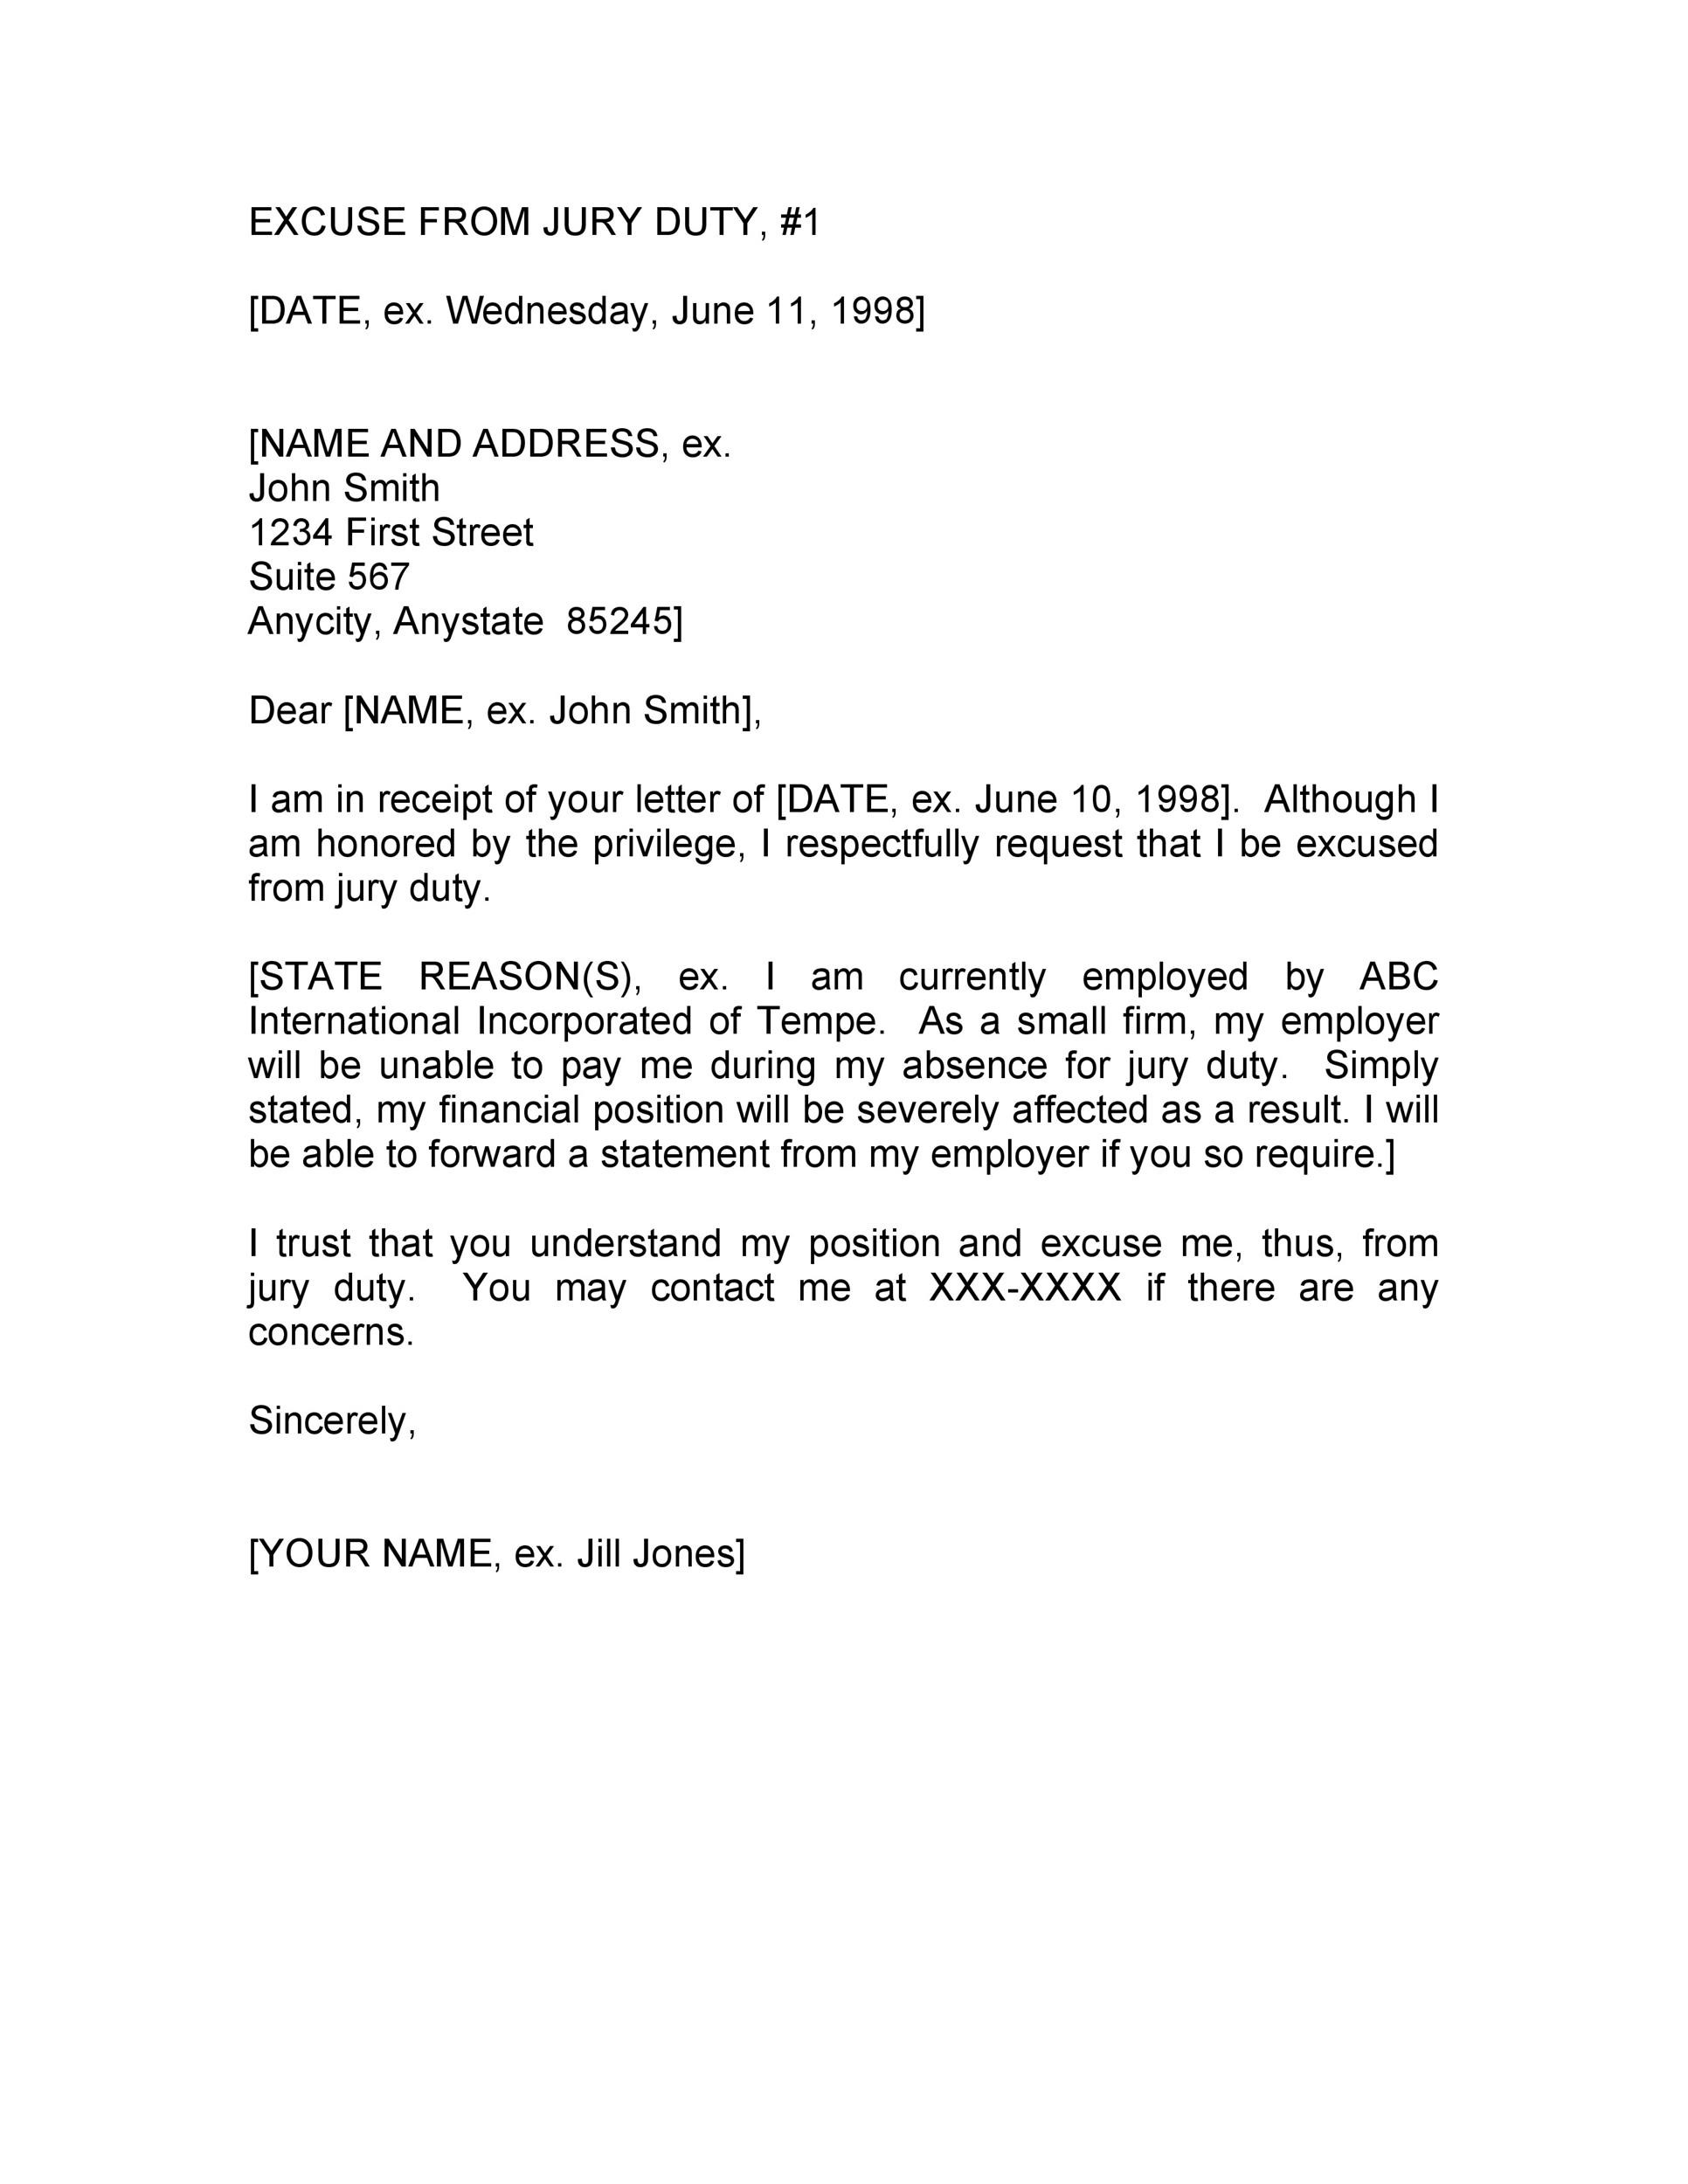 Free jury duty excuse letter template 06